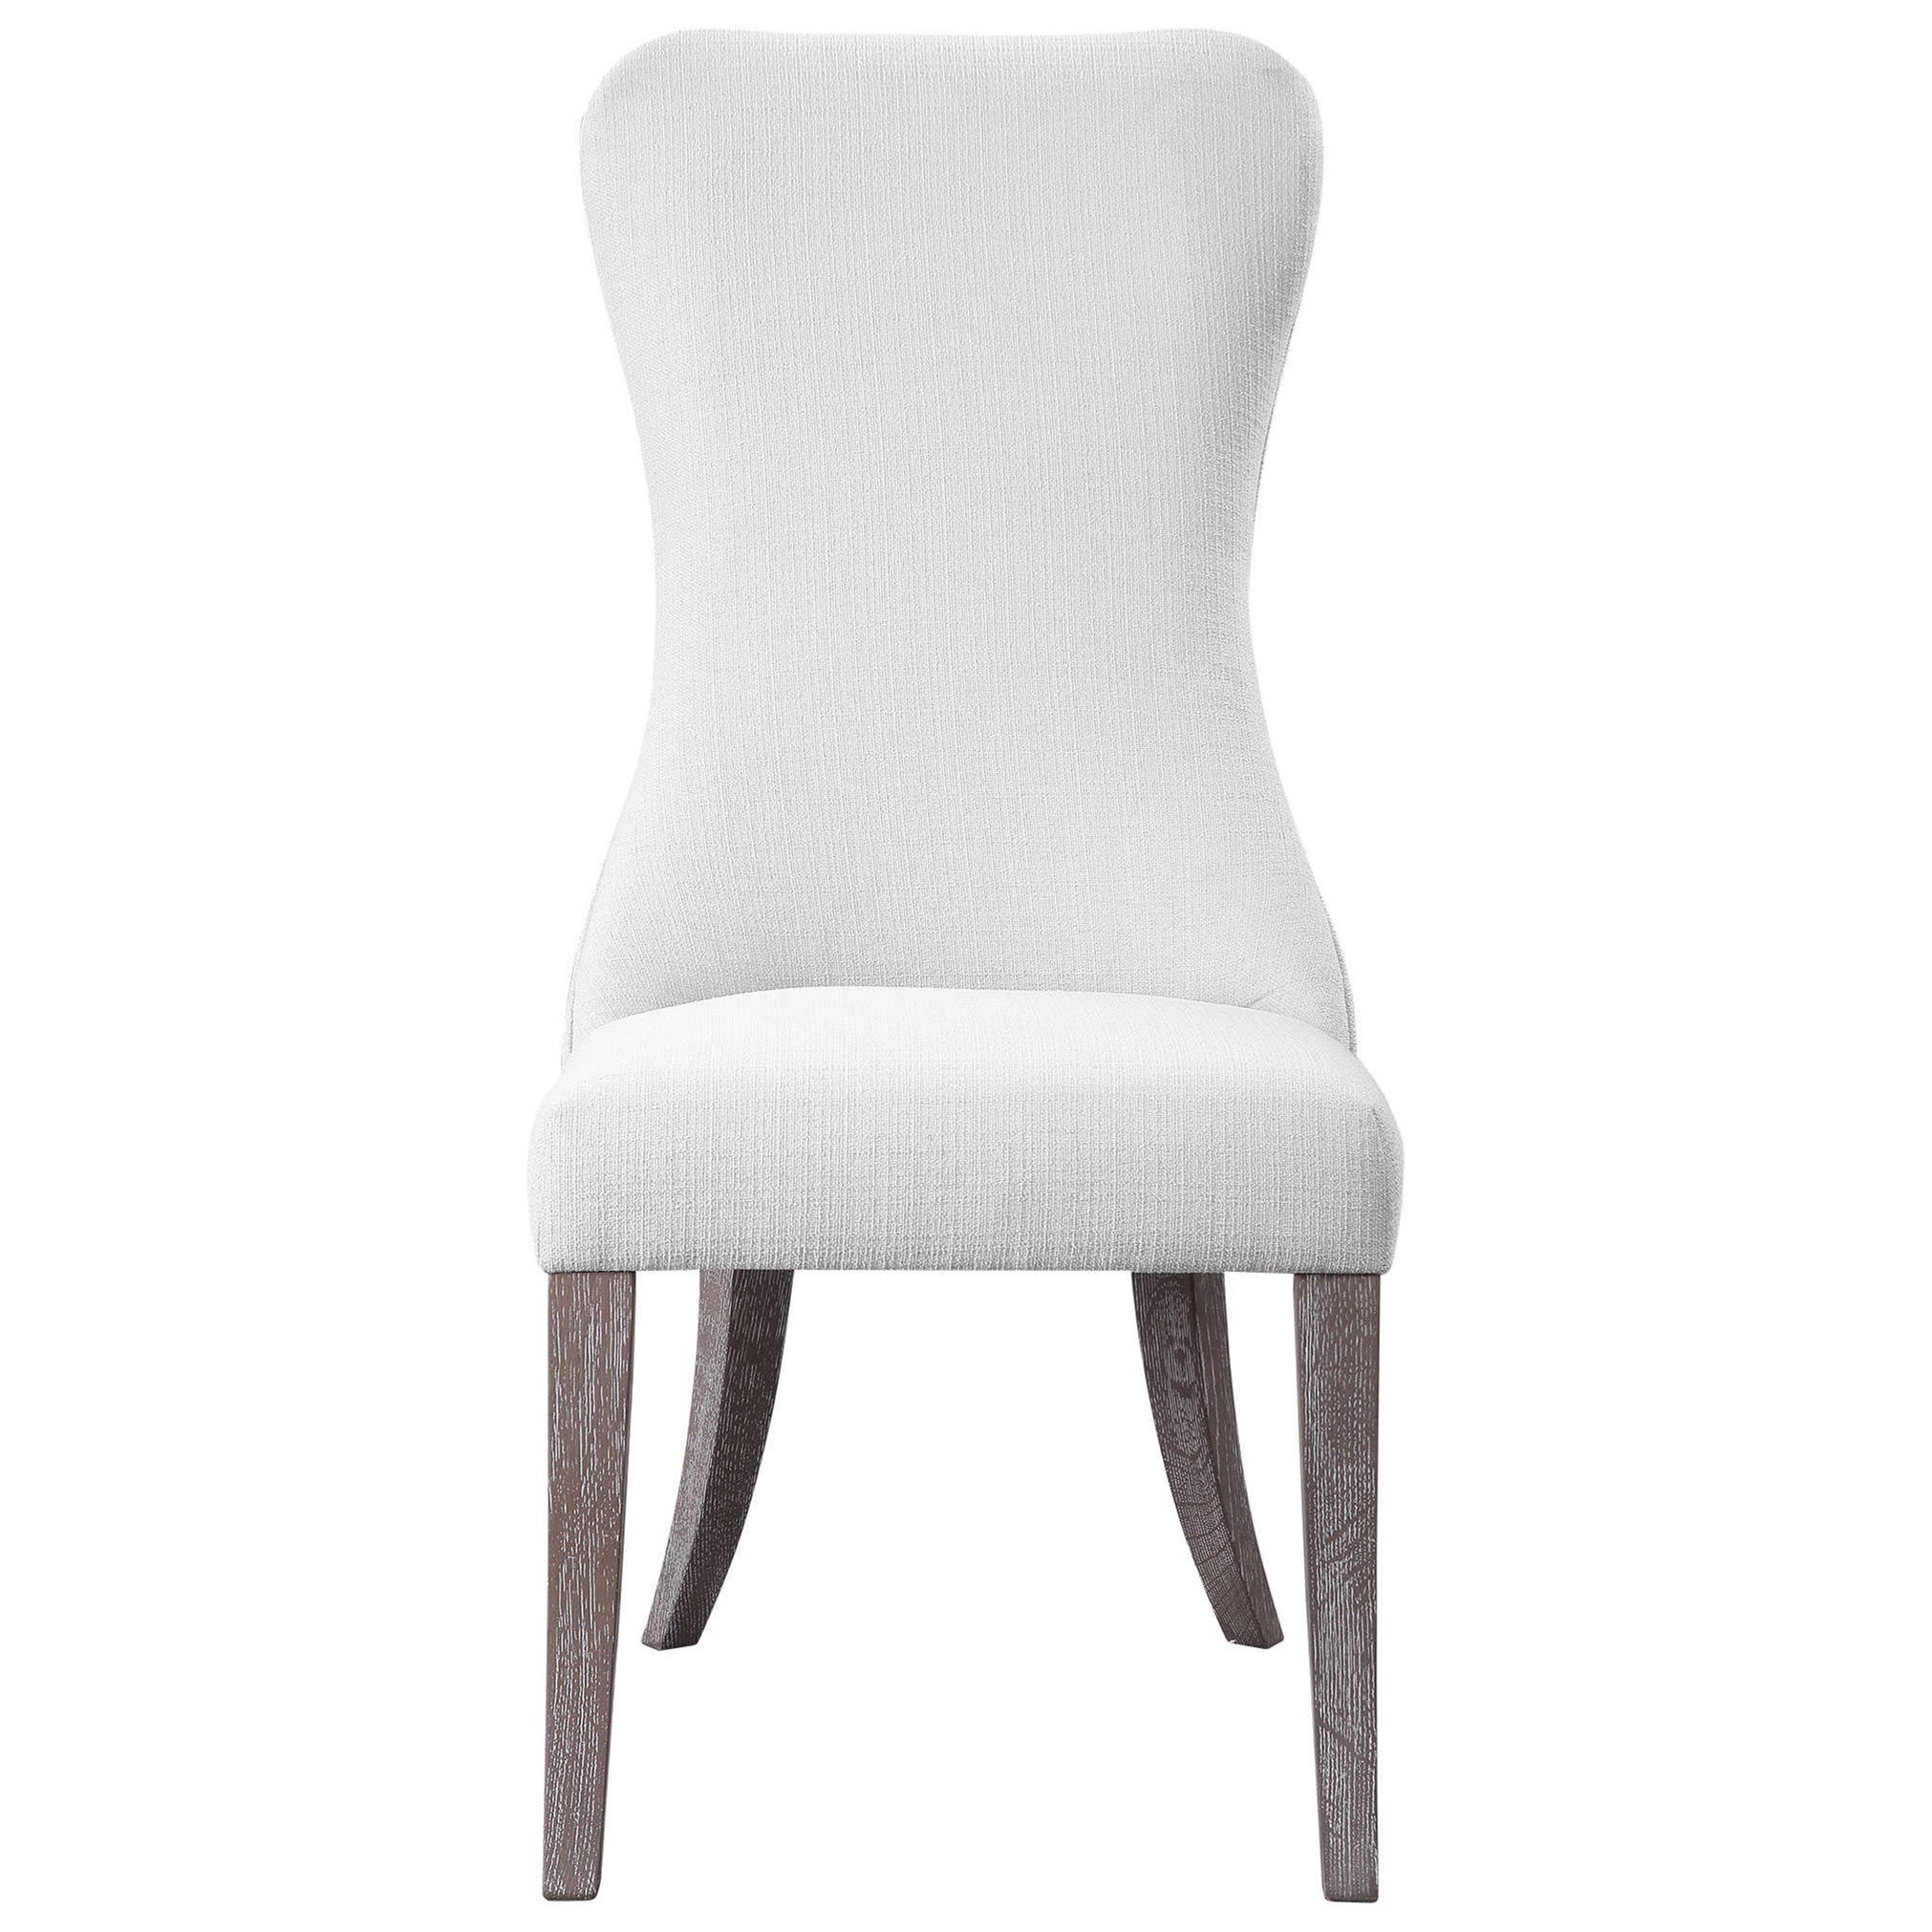 Accent Furniture - Accent Chairs Caledonia Armless Chair by Uttermost at Del Sol Furniture